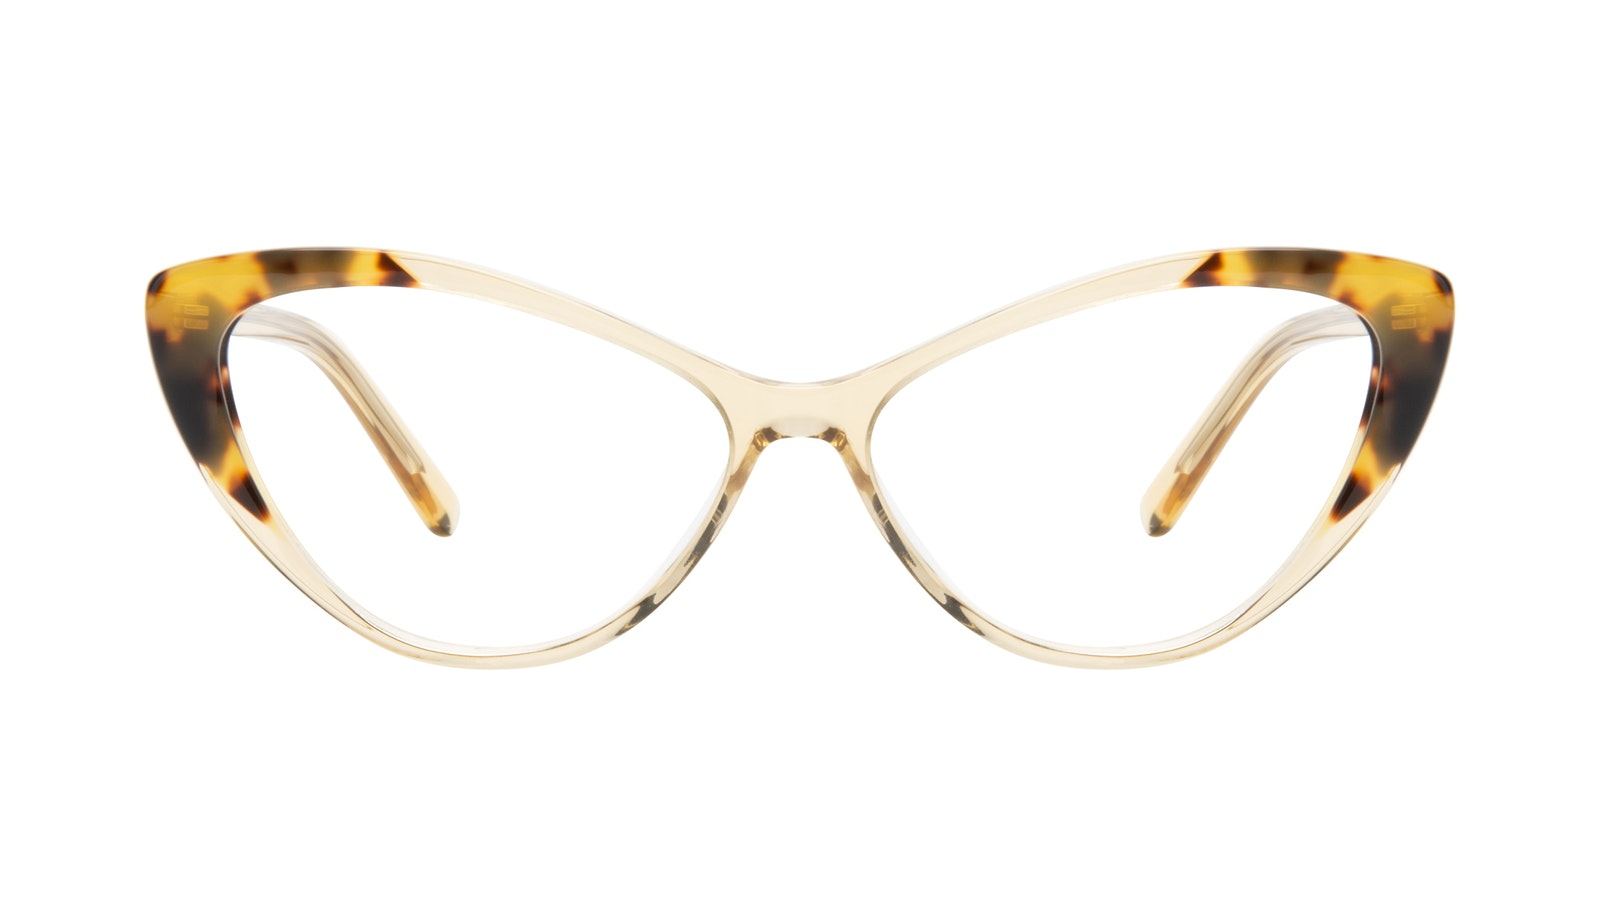 Affordable Fashion Glasses Cat Eye Eyeglasses Women Gossamer Golden Tort